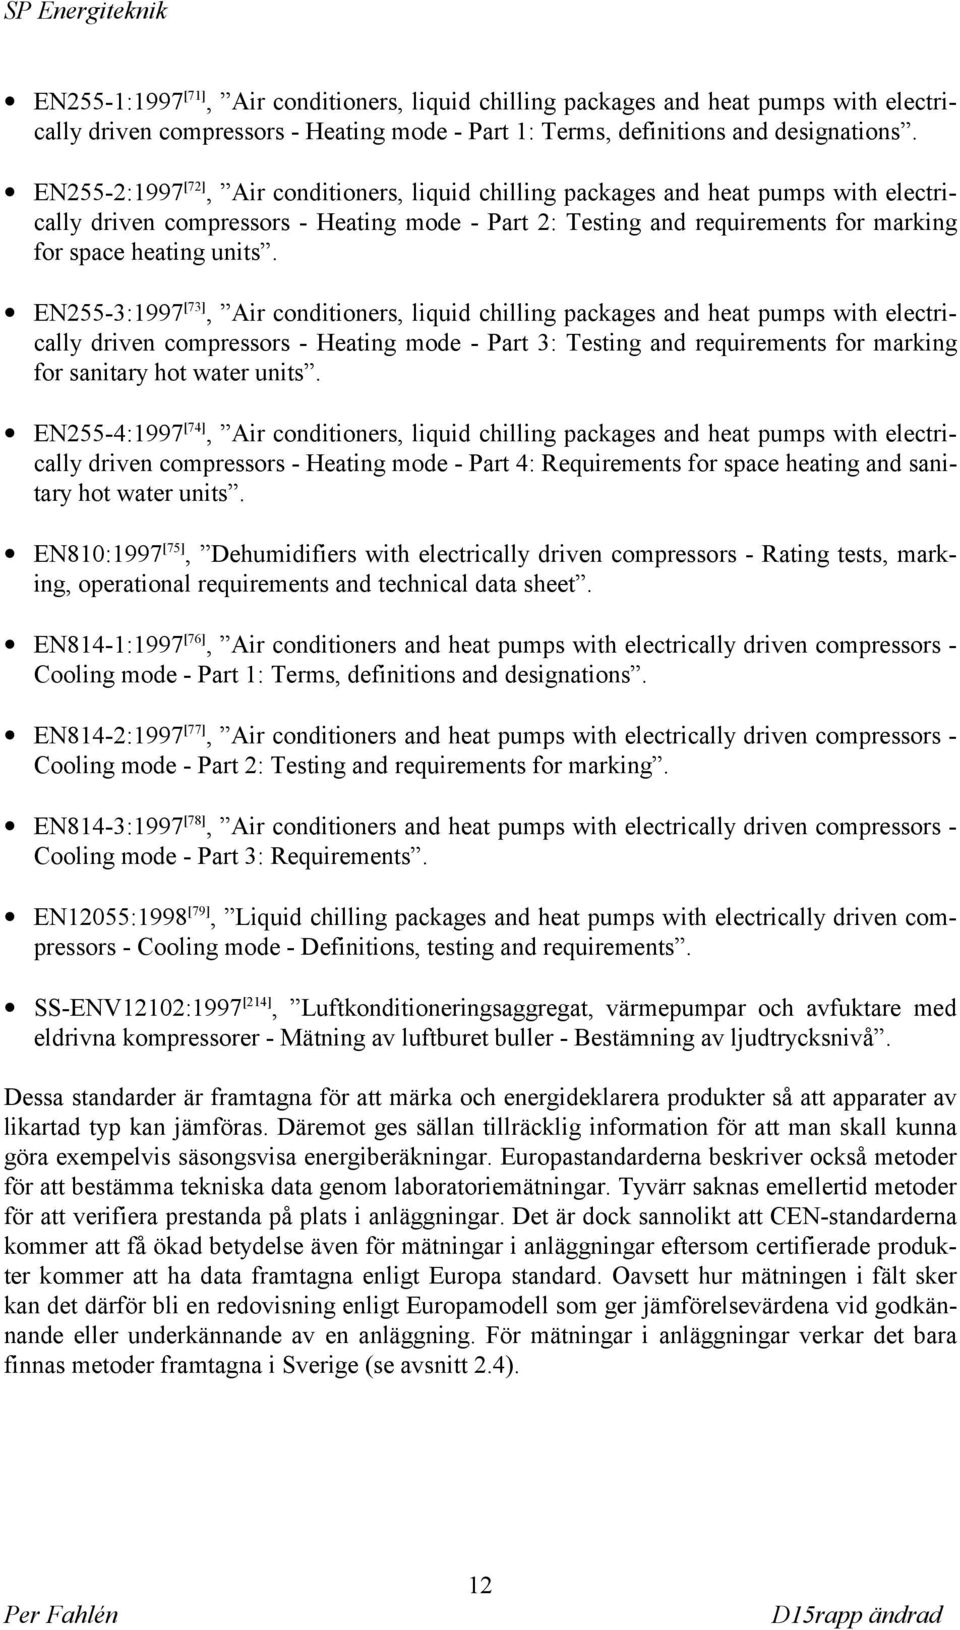 EN255-3:1997 [73], Air conditioners, liquid chilling packages and heat pumps with electrically driven compressors - Heating mode - Part 3: Testing and requirements for marking for sanitary hot water